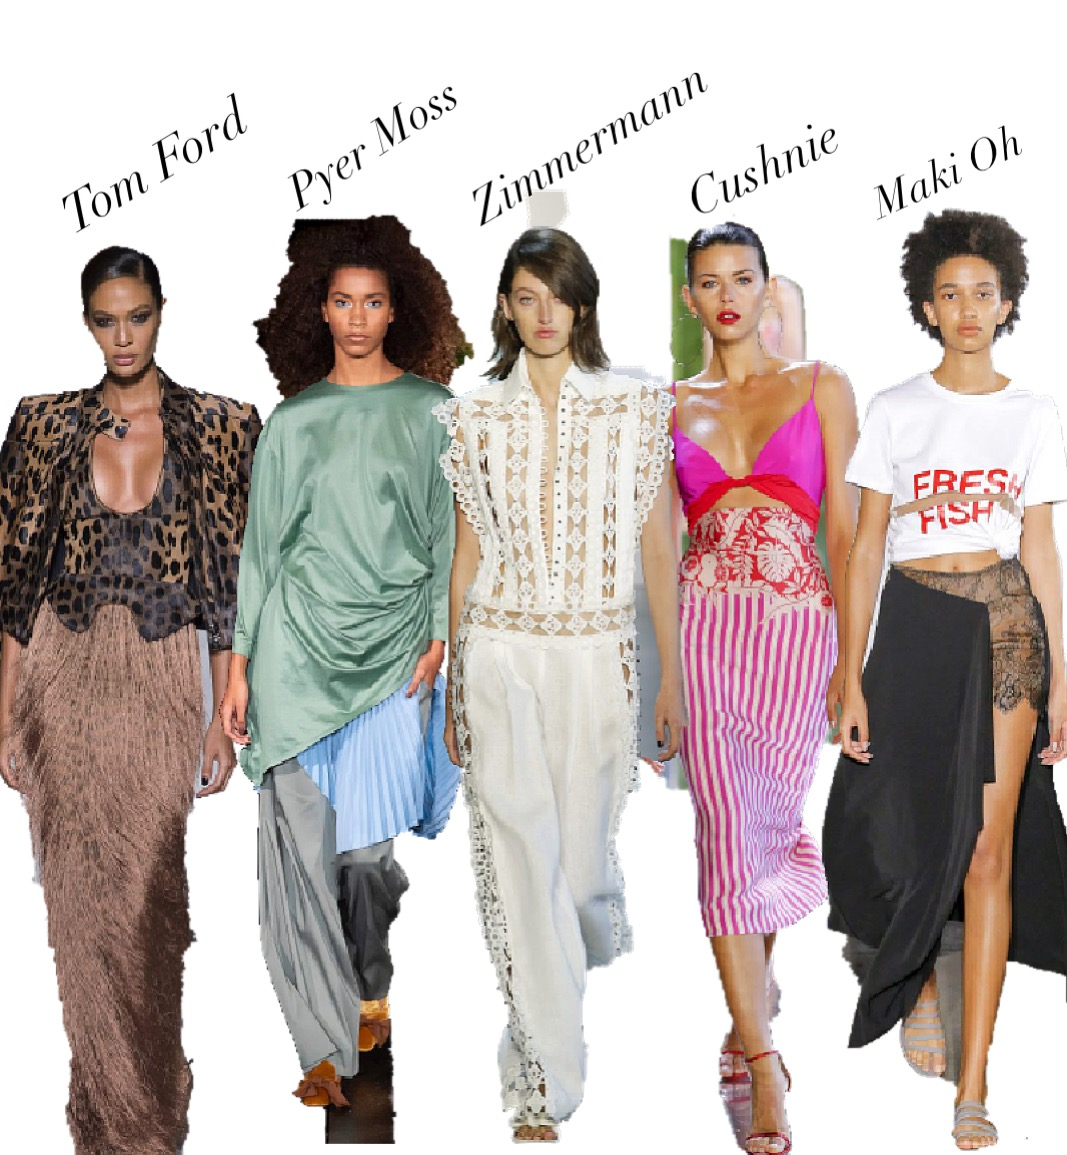 SPRING/SUMMER 19 NEW YORK FASHION WEEK FAVOURITES!